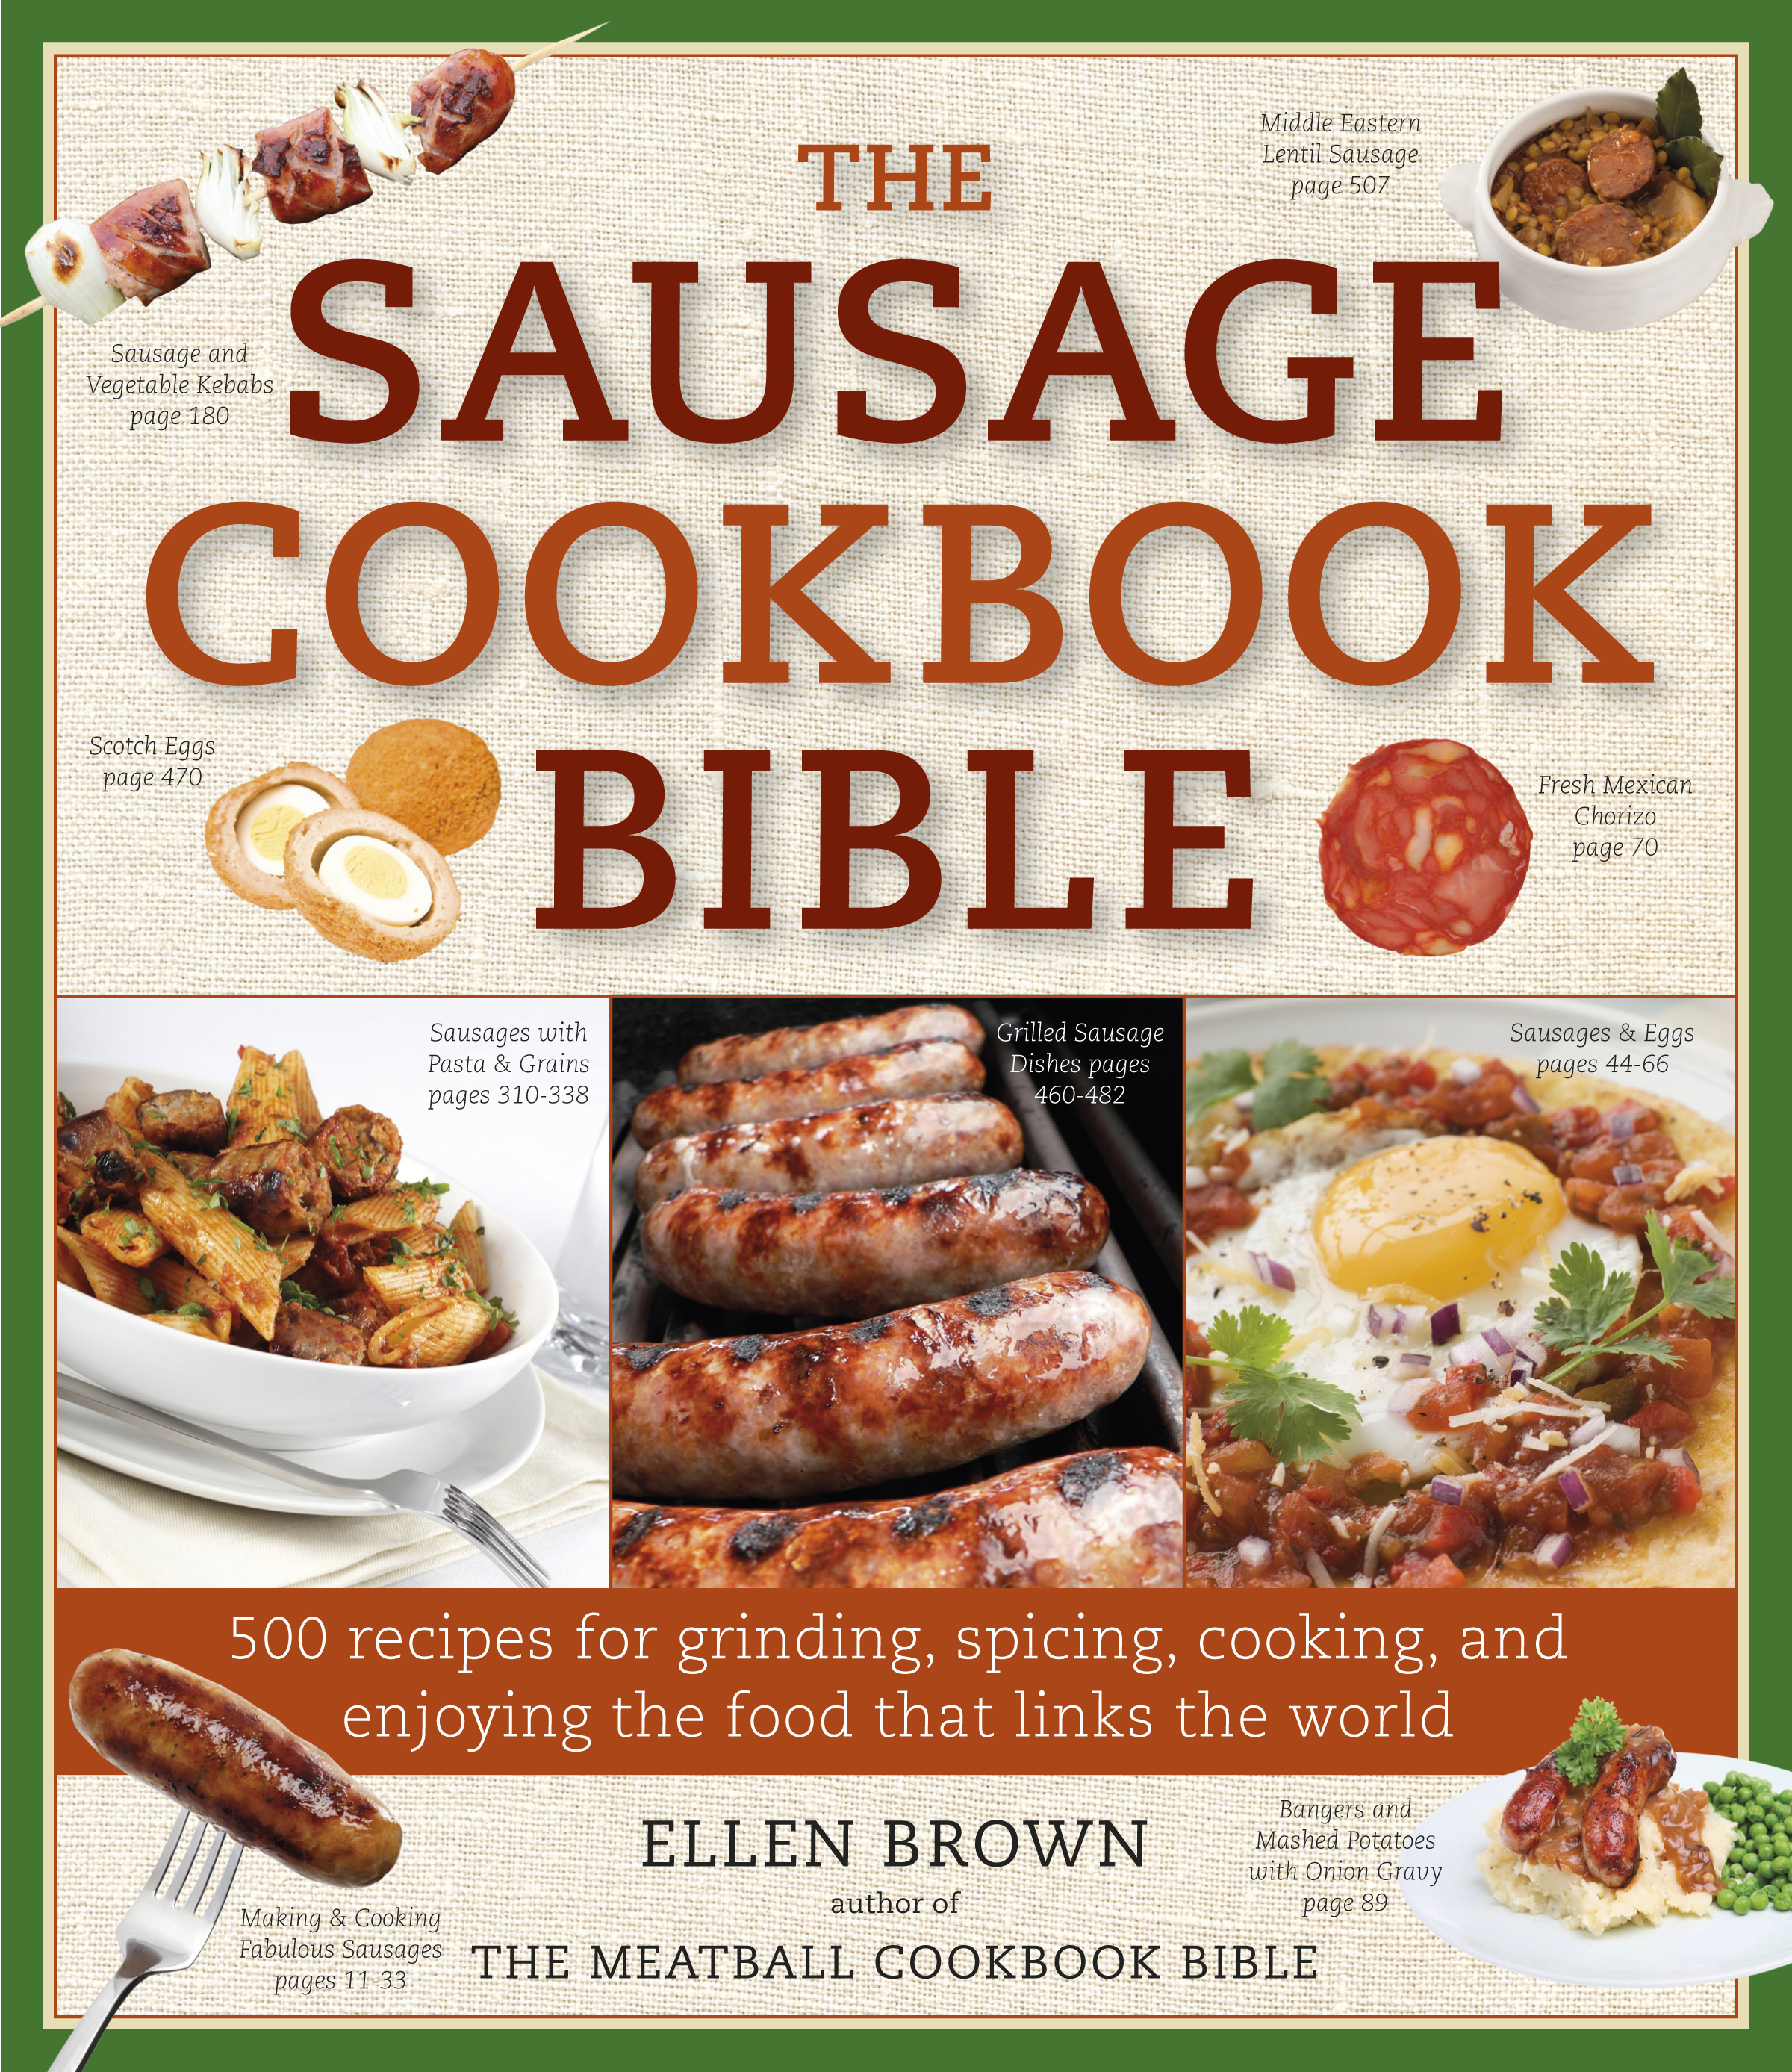 The sausage cookbook bible book by ellen brown official 500 recipes for cooking sausage forumfinder Choice Image